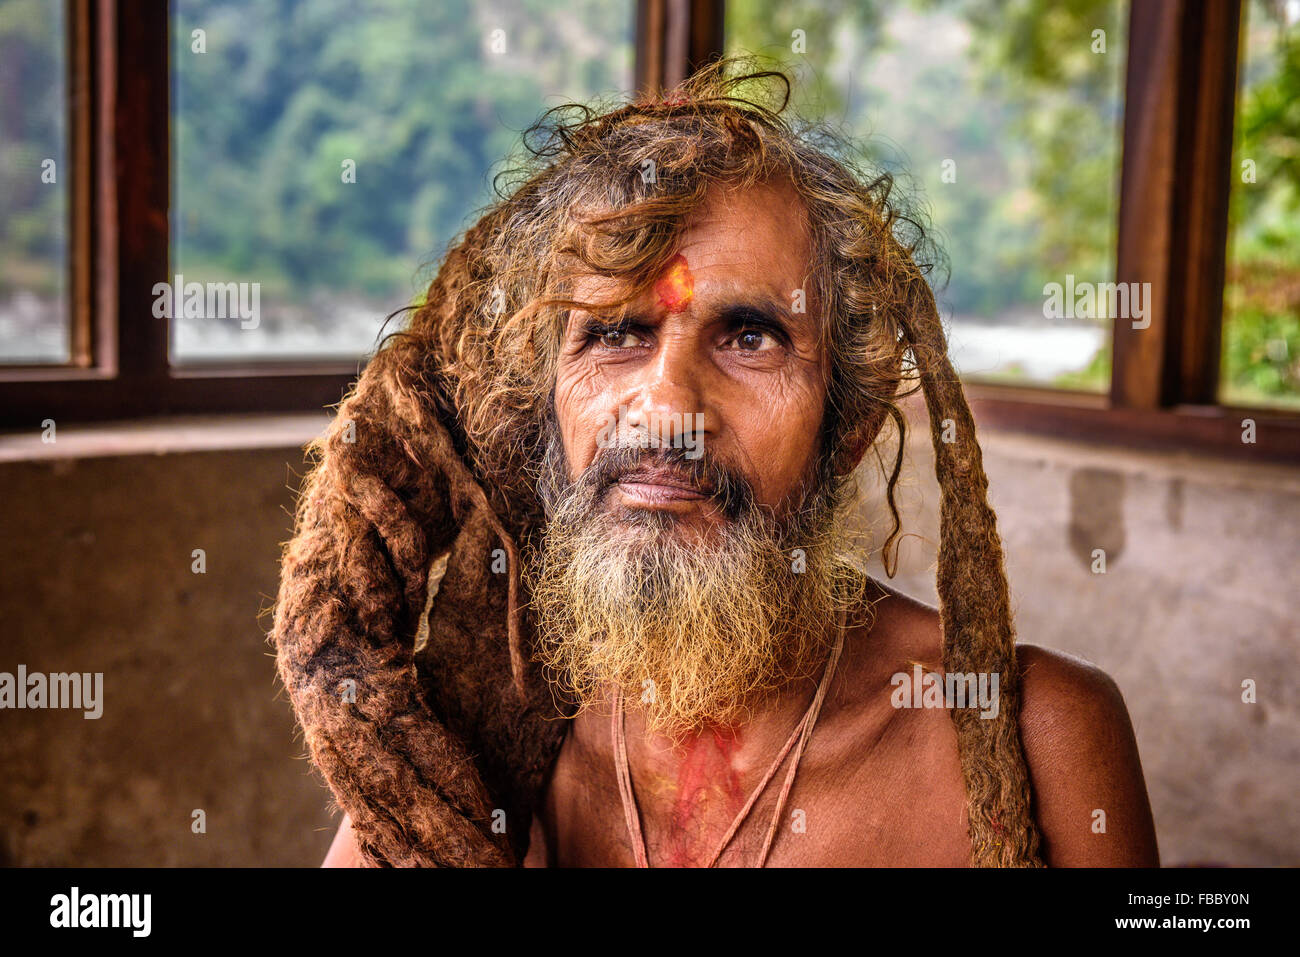 Portrait of a Sadhu baba  (holy man) with traditional long hair in a nepalese temple - Stock Image